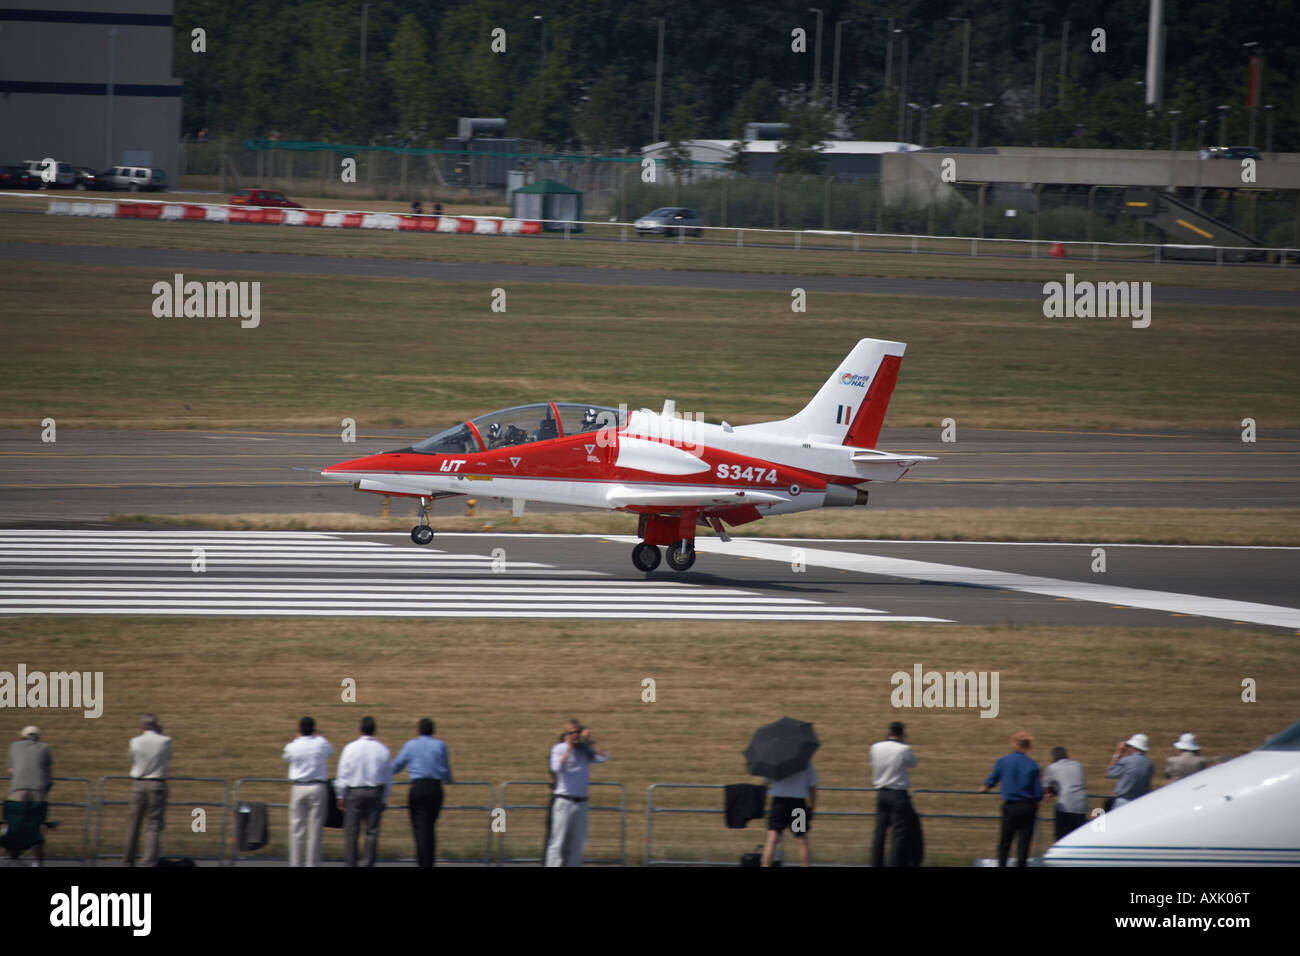 Hindustan Aeronautics Limited IJT 36 Trainer aircraft about to take off for flying display at Farnborough International - Stock Image